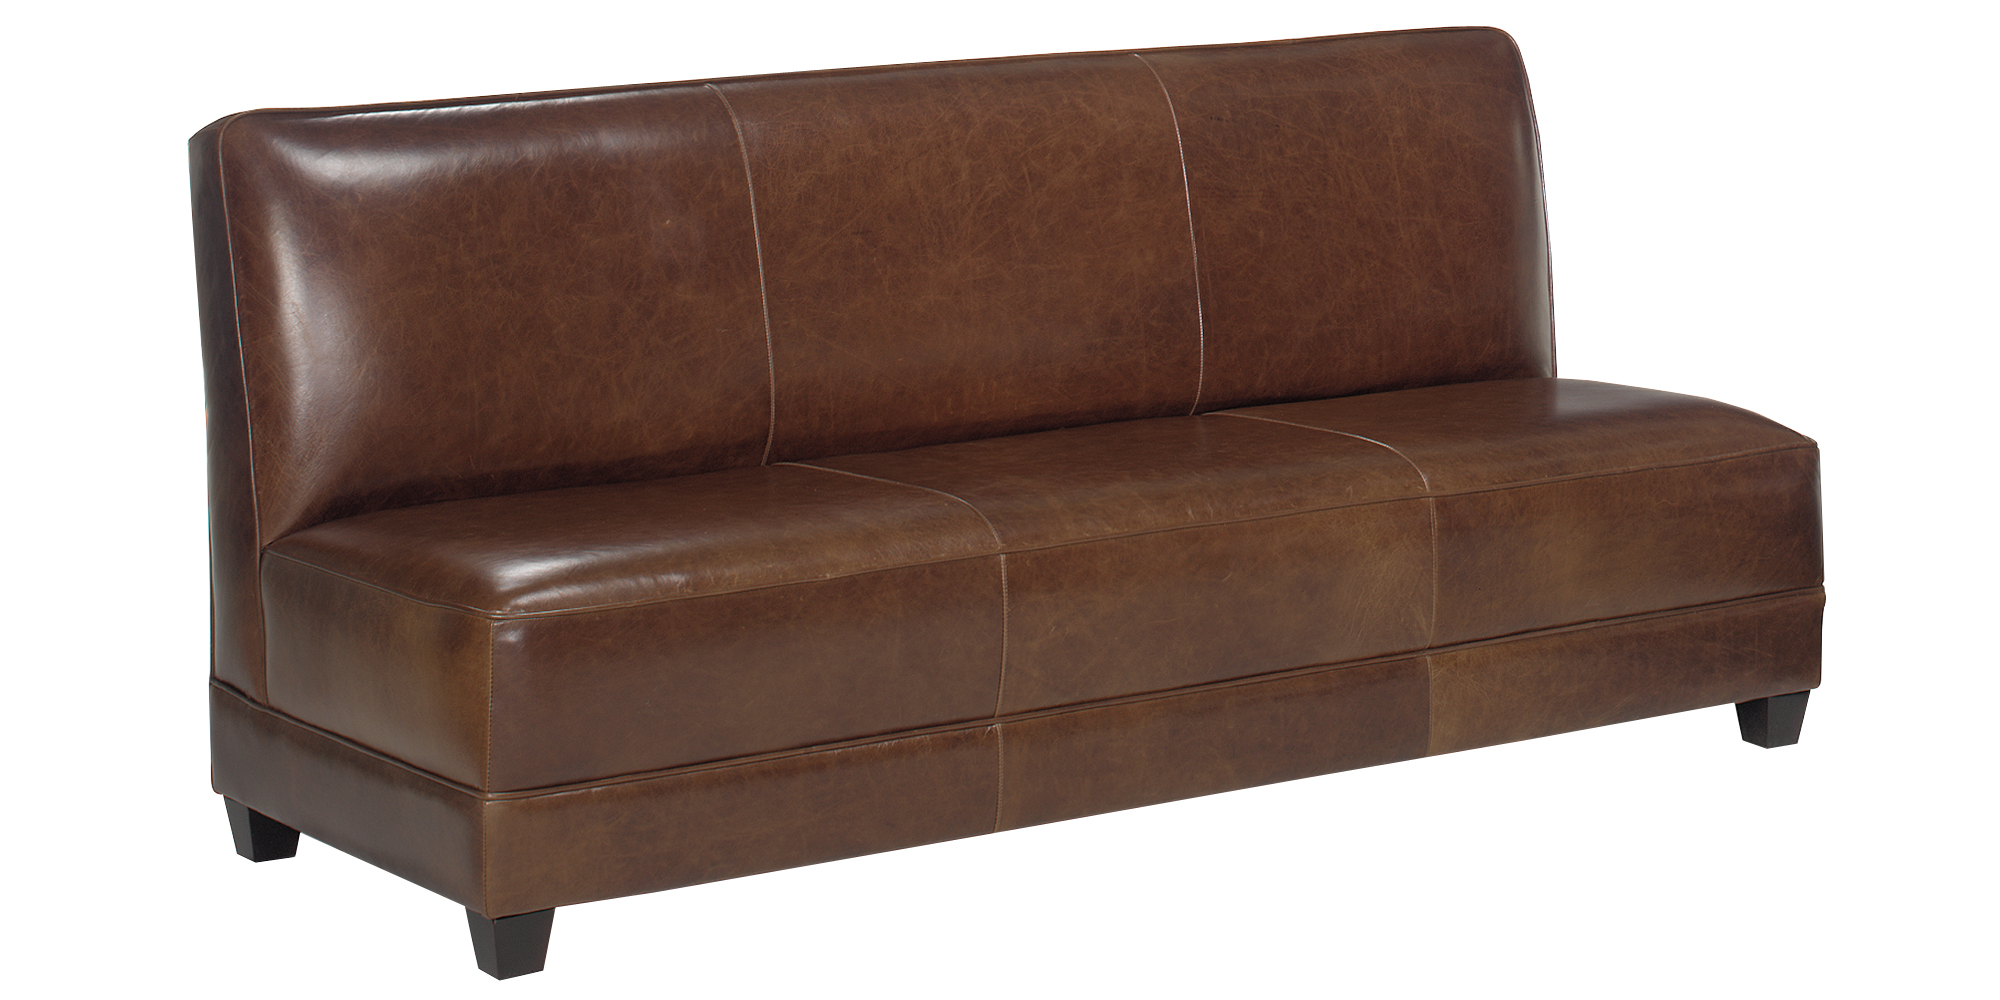 Dining Room Settee Armless Leather Settee Sofa Set With Ottoman And Chair